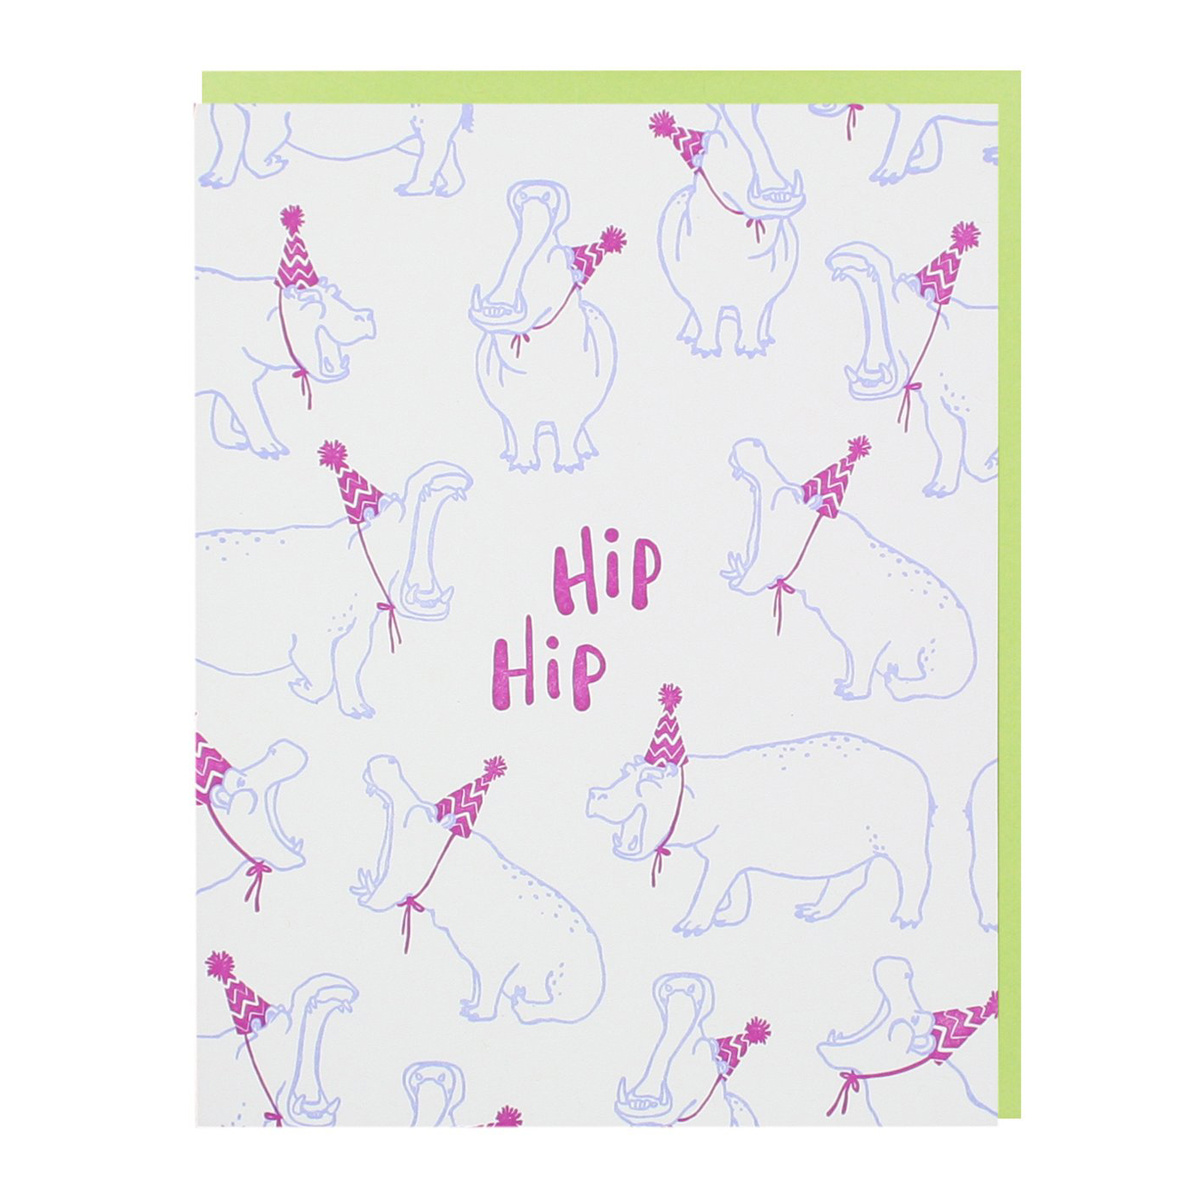 Smudge Ink - SI Party Hippos Birthday Hip Hip Hooray Card